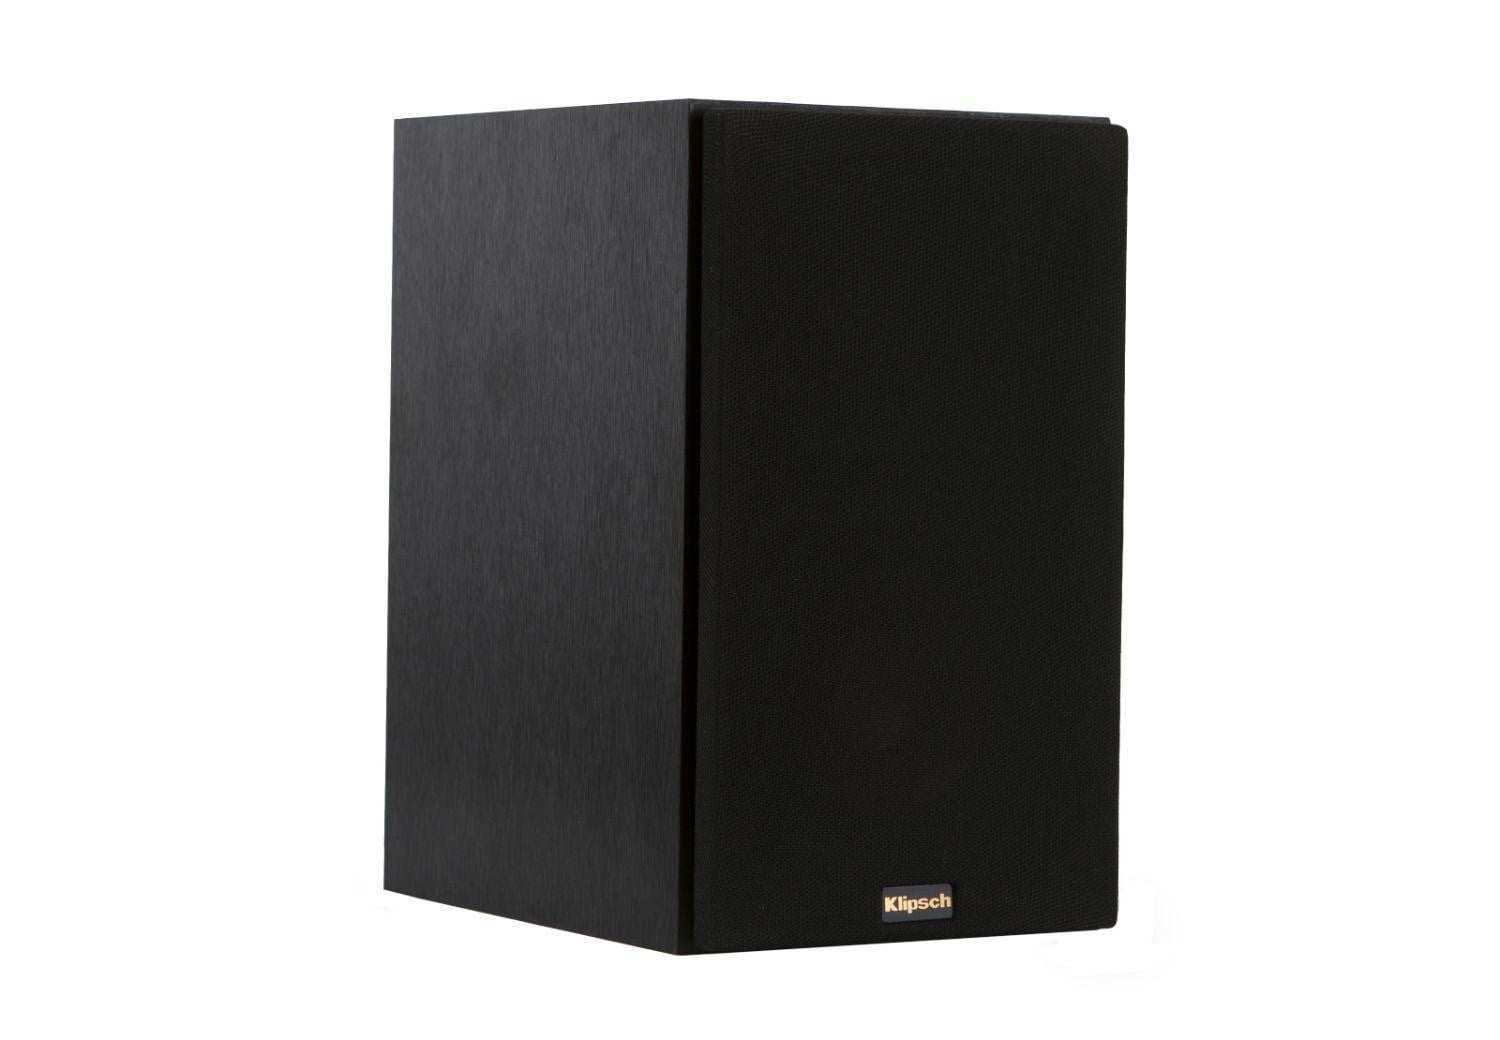 klipsch unveils stockpile new speakers reference home theater line r 14m grille